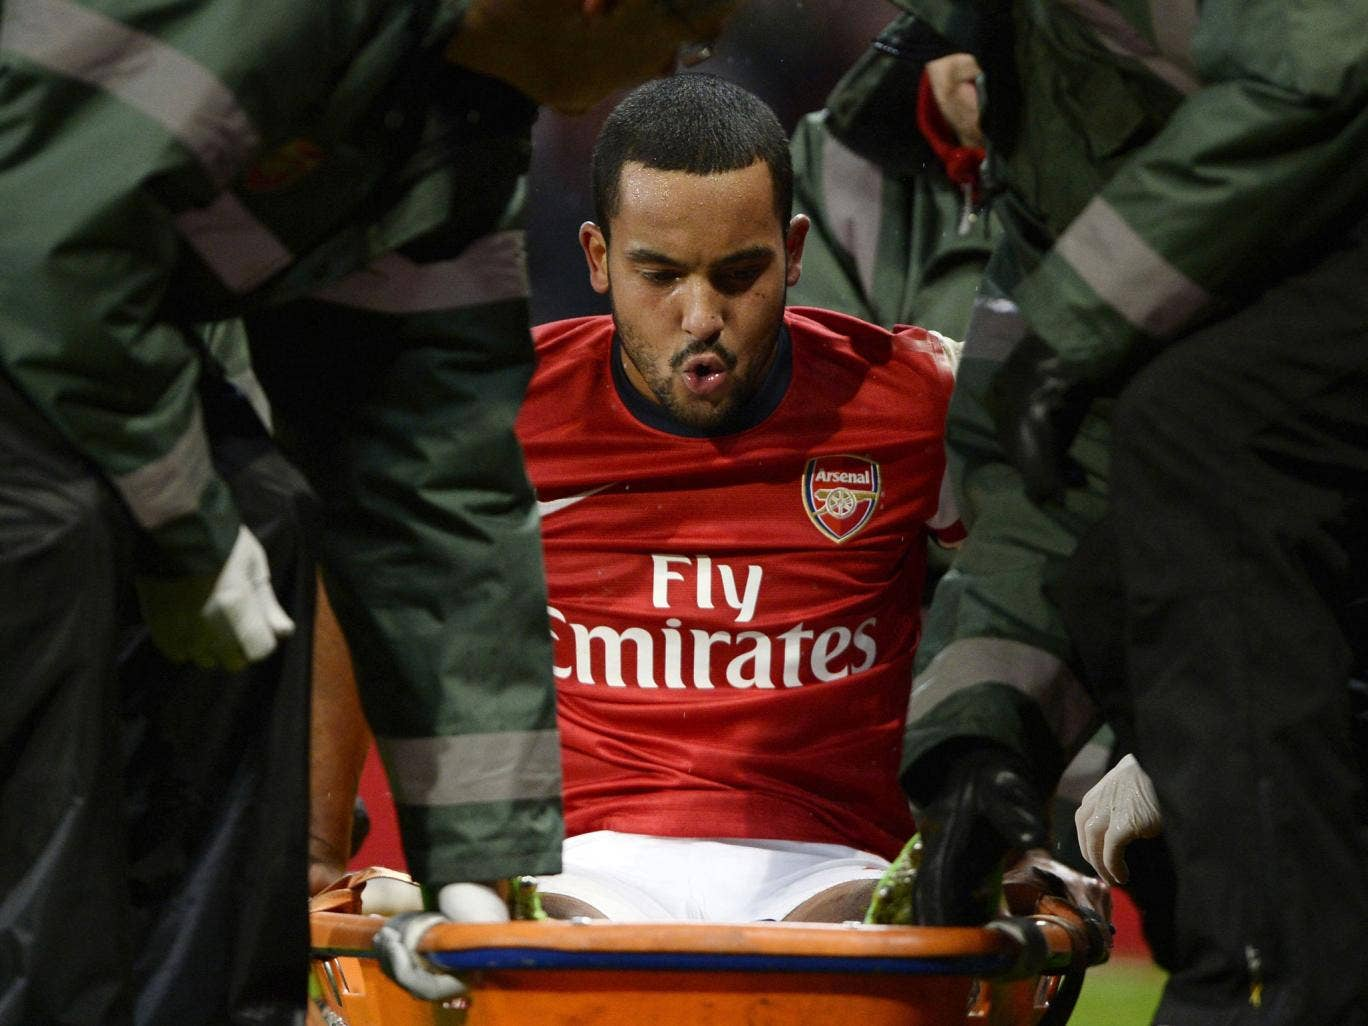 Theo Walcott is stretchered off the pitch during the match against Tottenham Hotspur